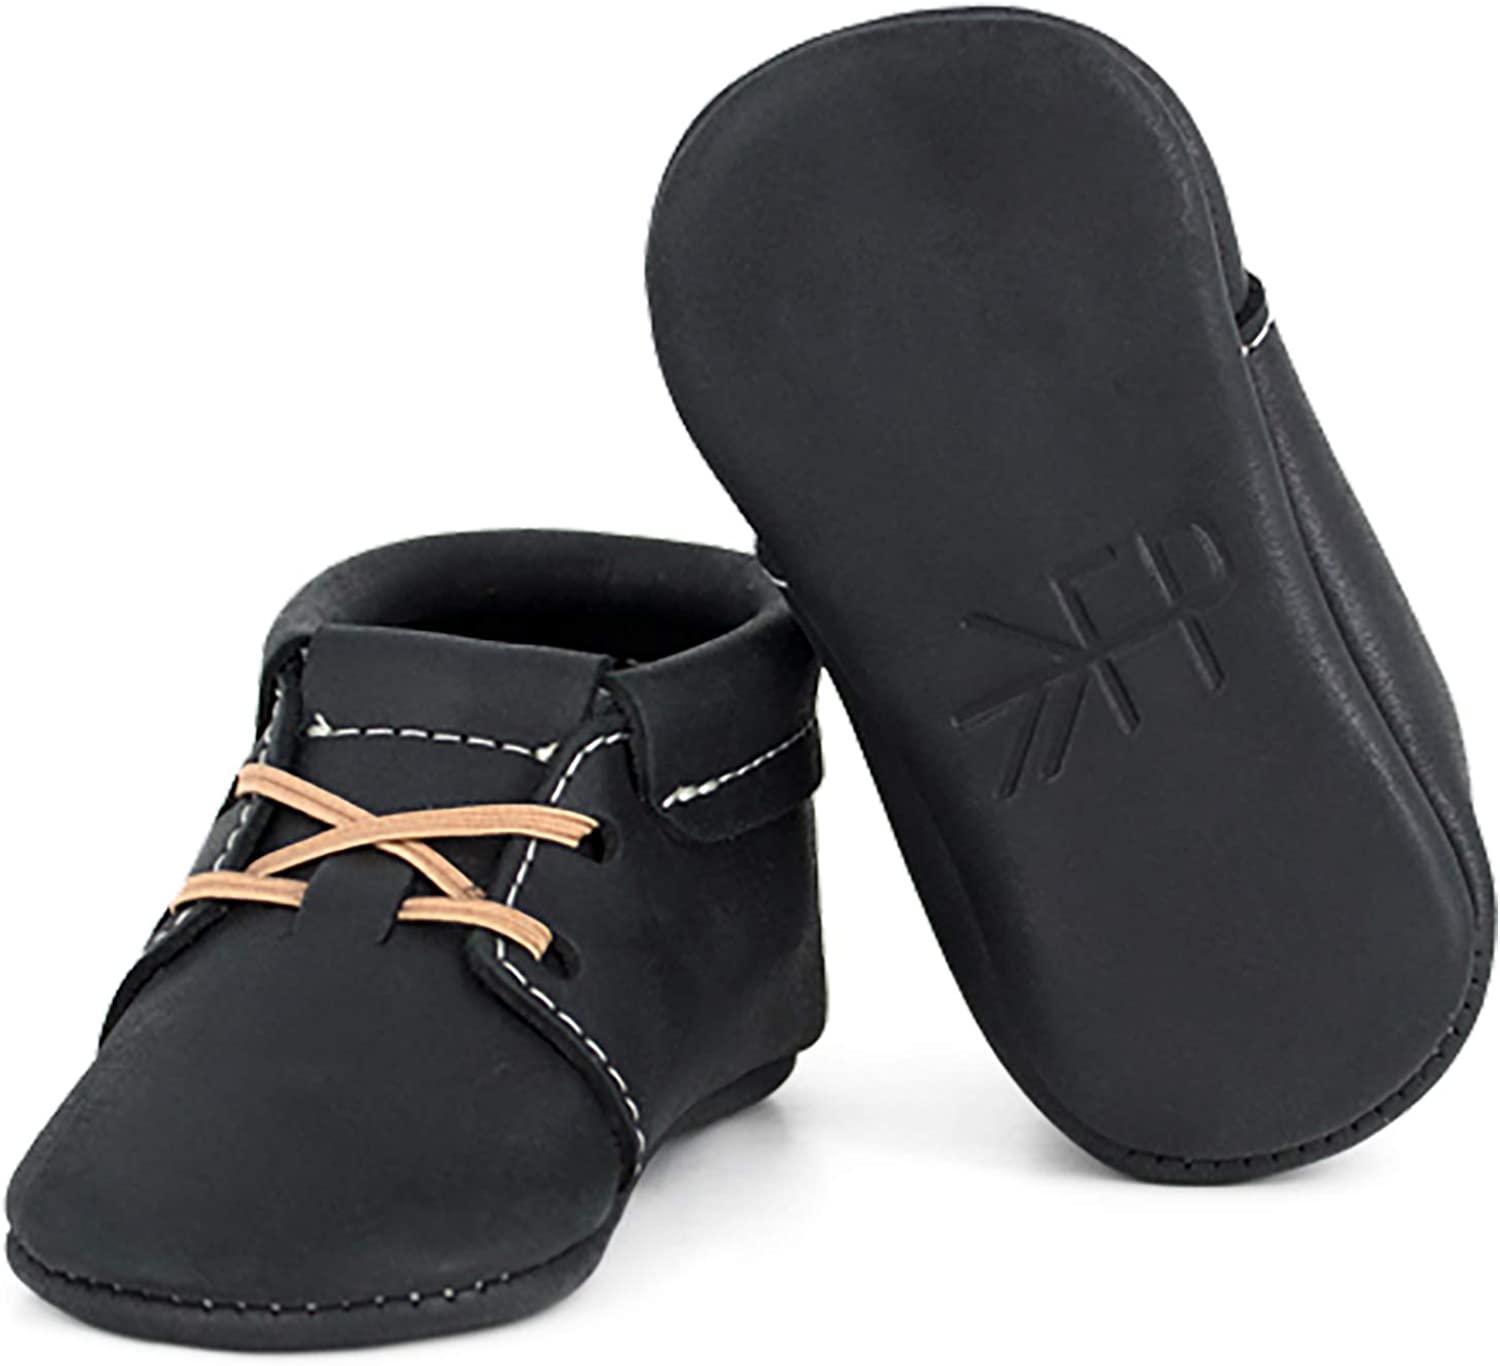 Baby Girl//Boy Shoes Freshly Picked Infant Sizes 1-5 Soft Sole Leather Oxford Moccasins Multiple Colors